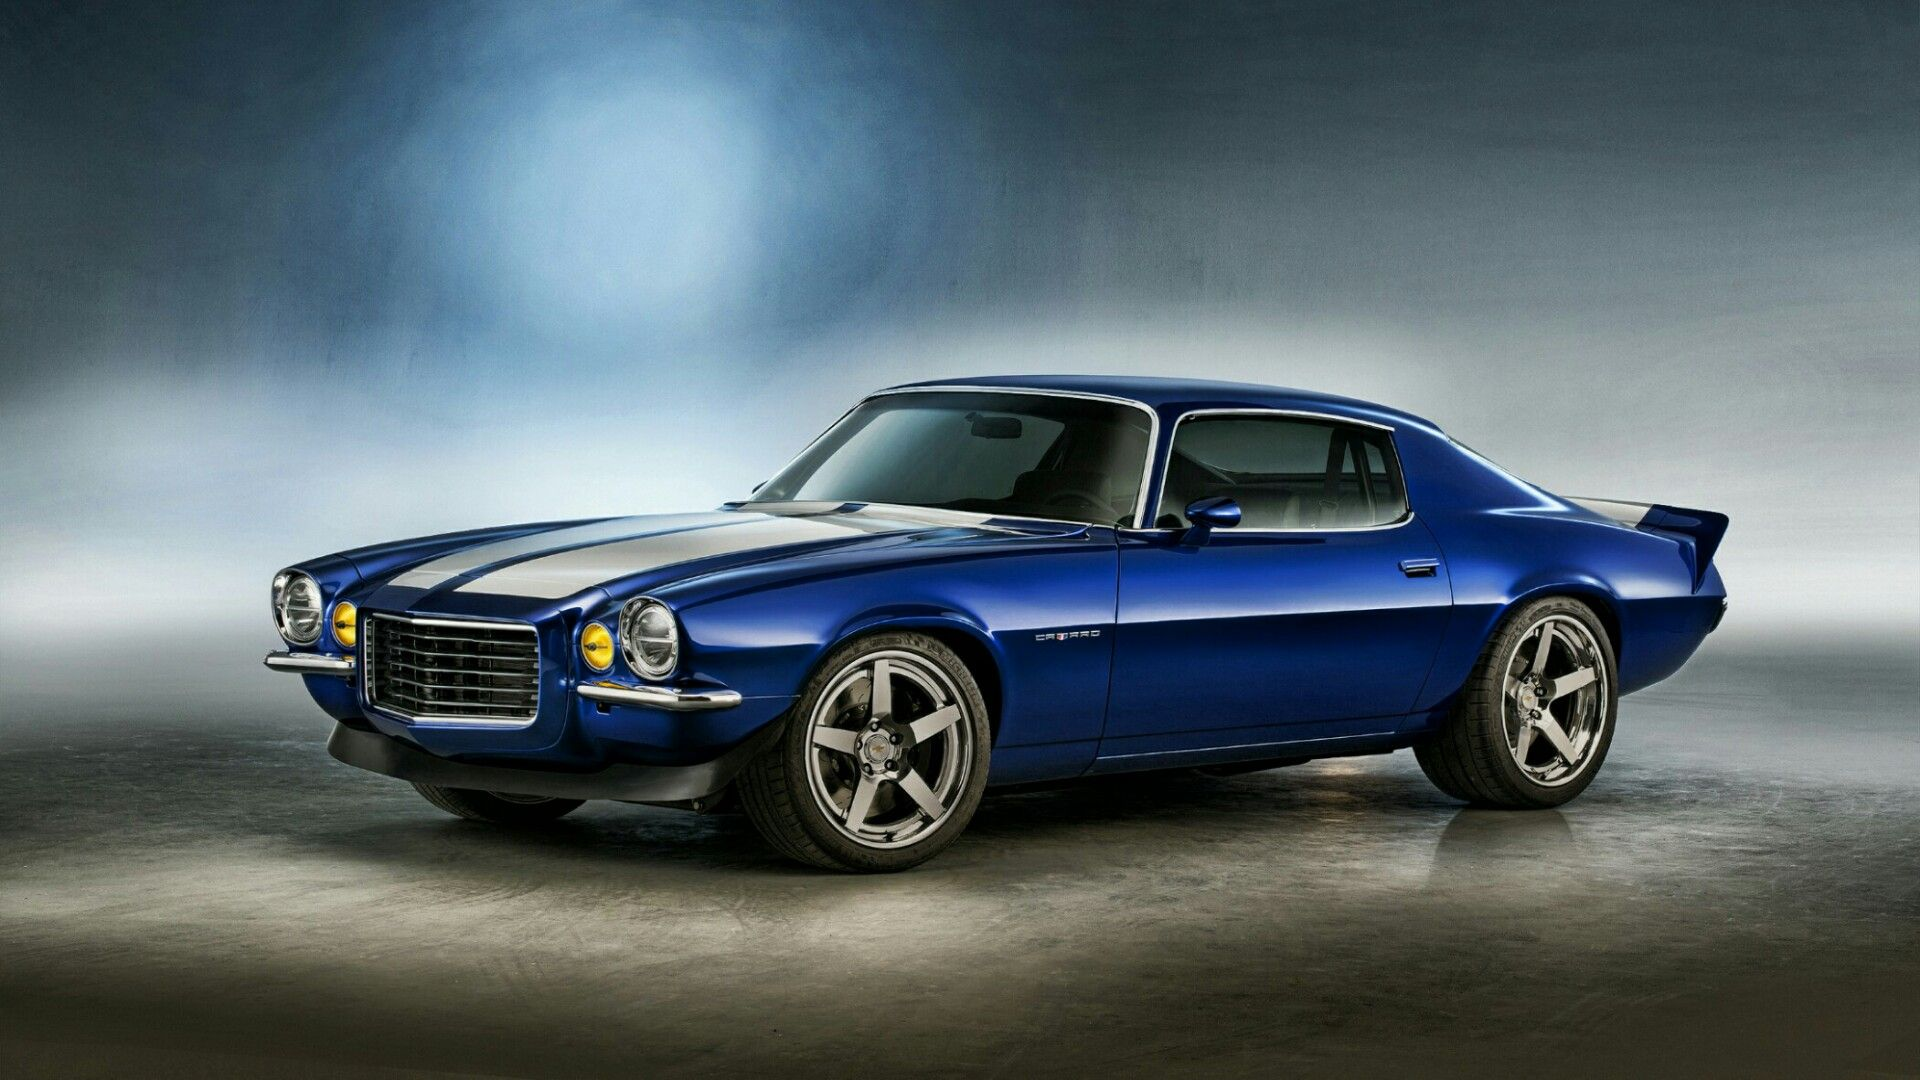 Chevy Muscle Car Wallpaper: 57 Chevy Muscle Car Wallpapers